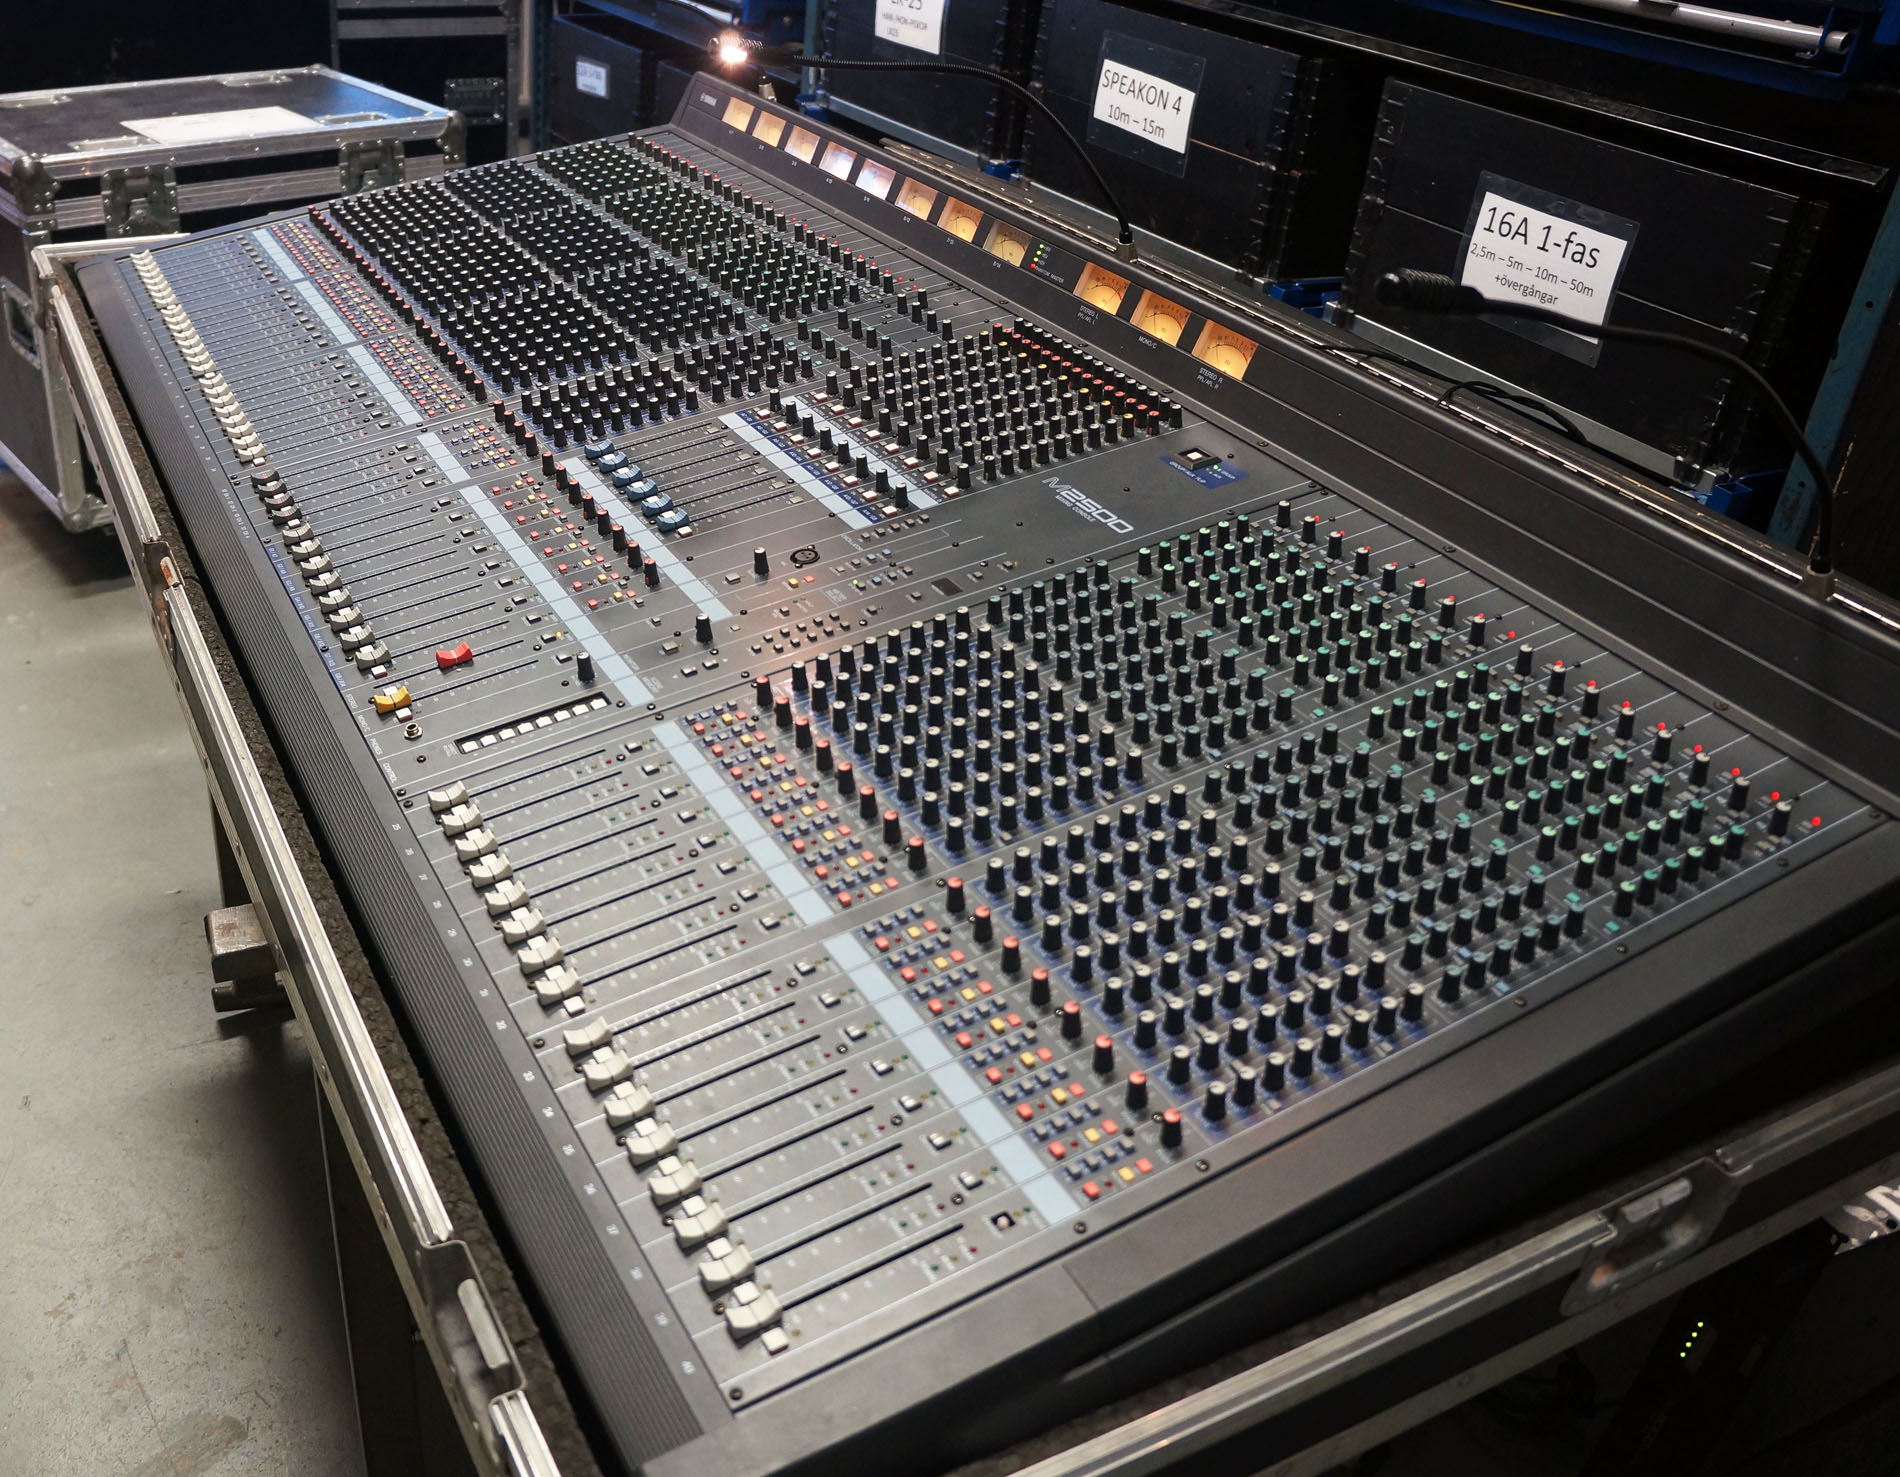 yamaha m2500 40c analog mixing console gearwise used av stage equipment. Black Bedroom Furniture Sets. Home Design Ideas